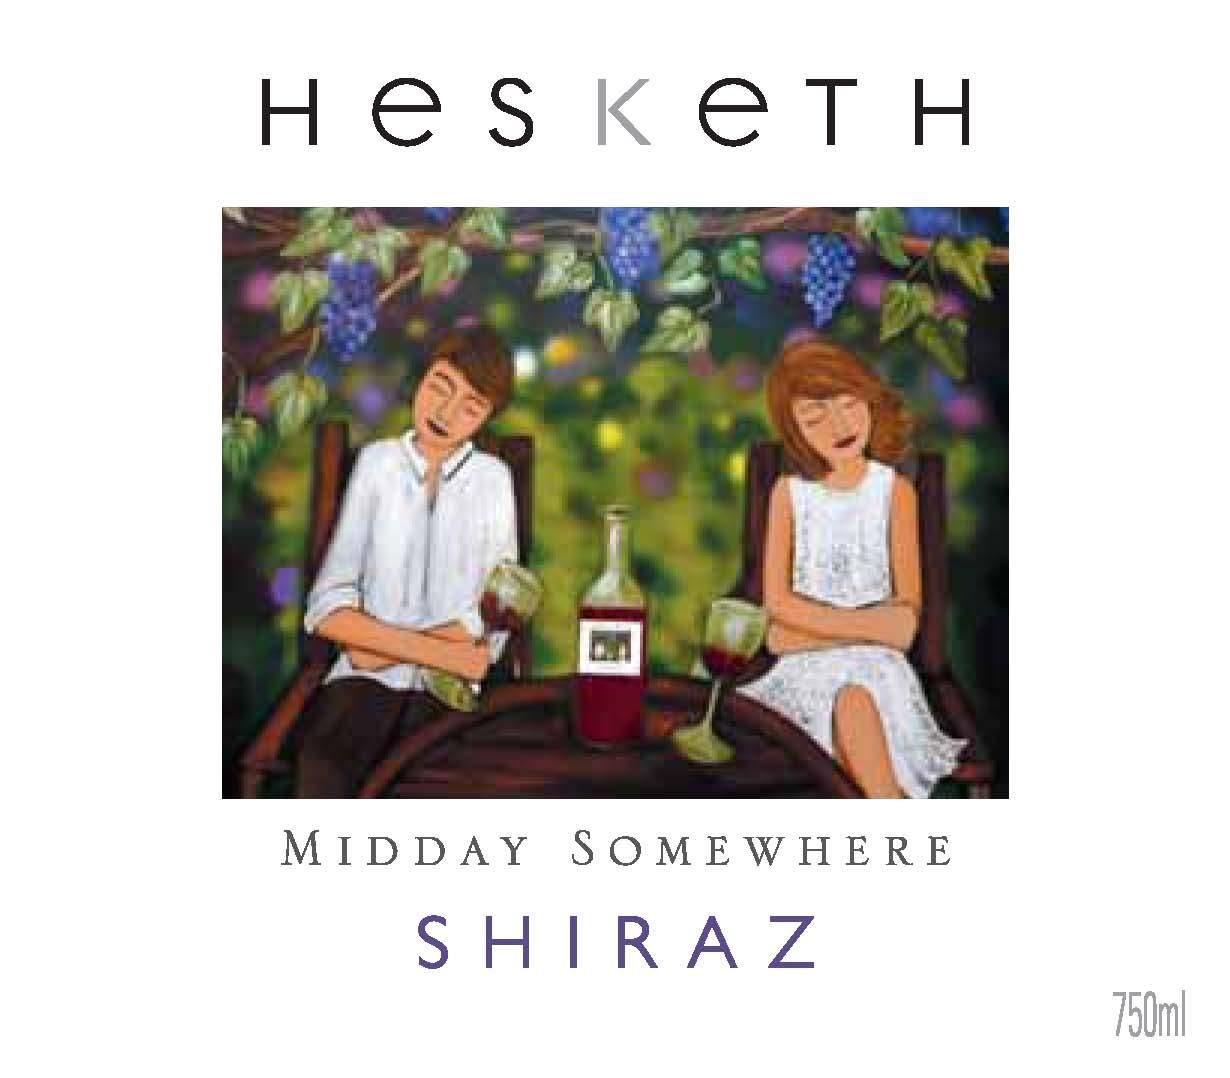 Hesketh Midday Somewhere Shiraz 2012 Front Label